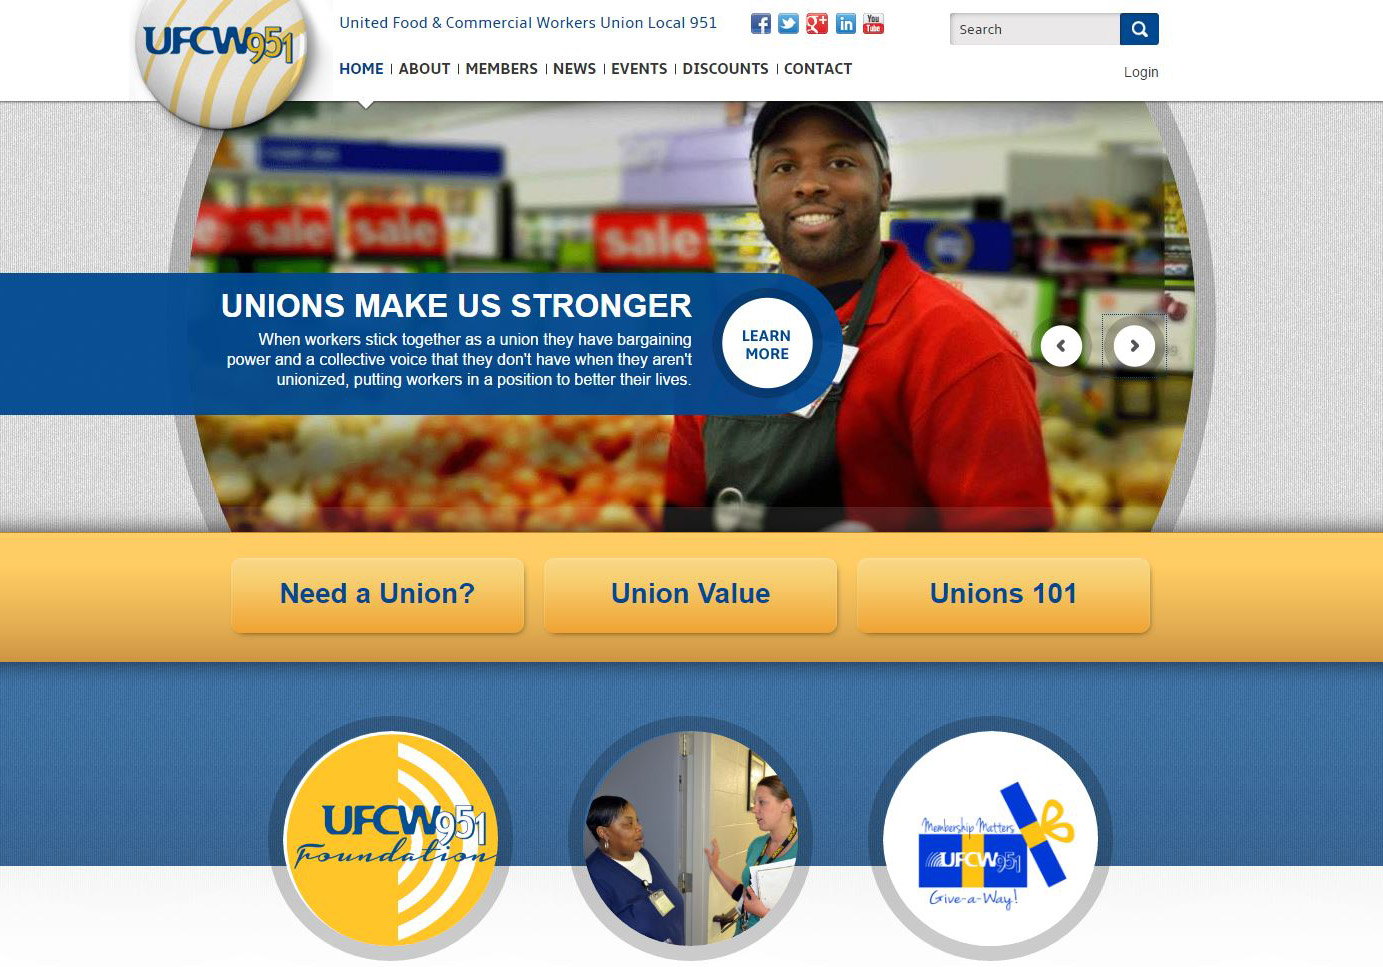 UFCW Local 951